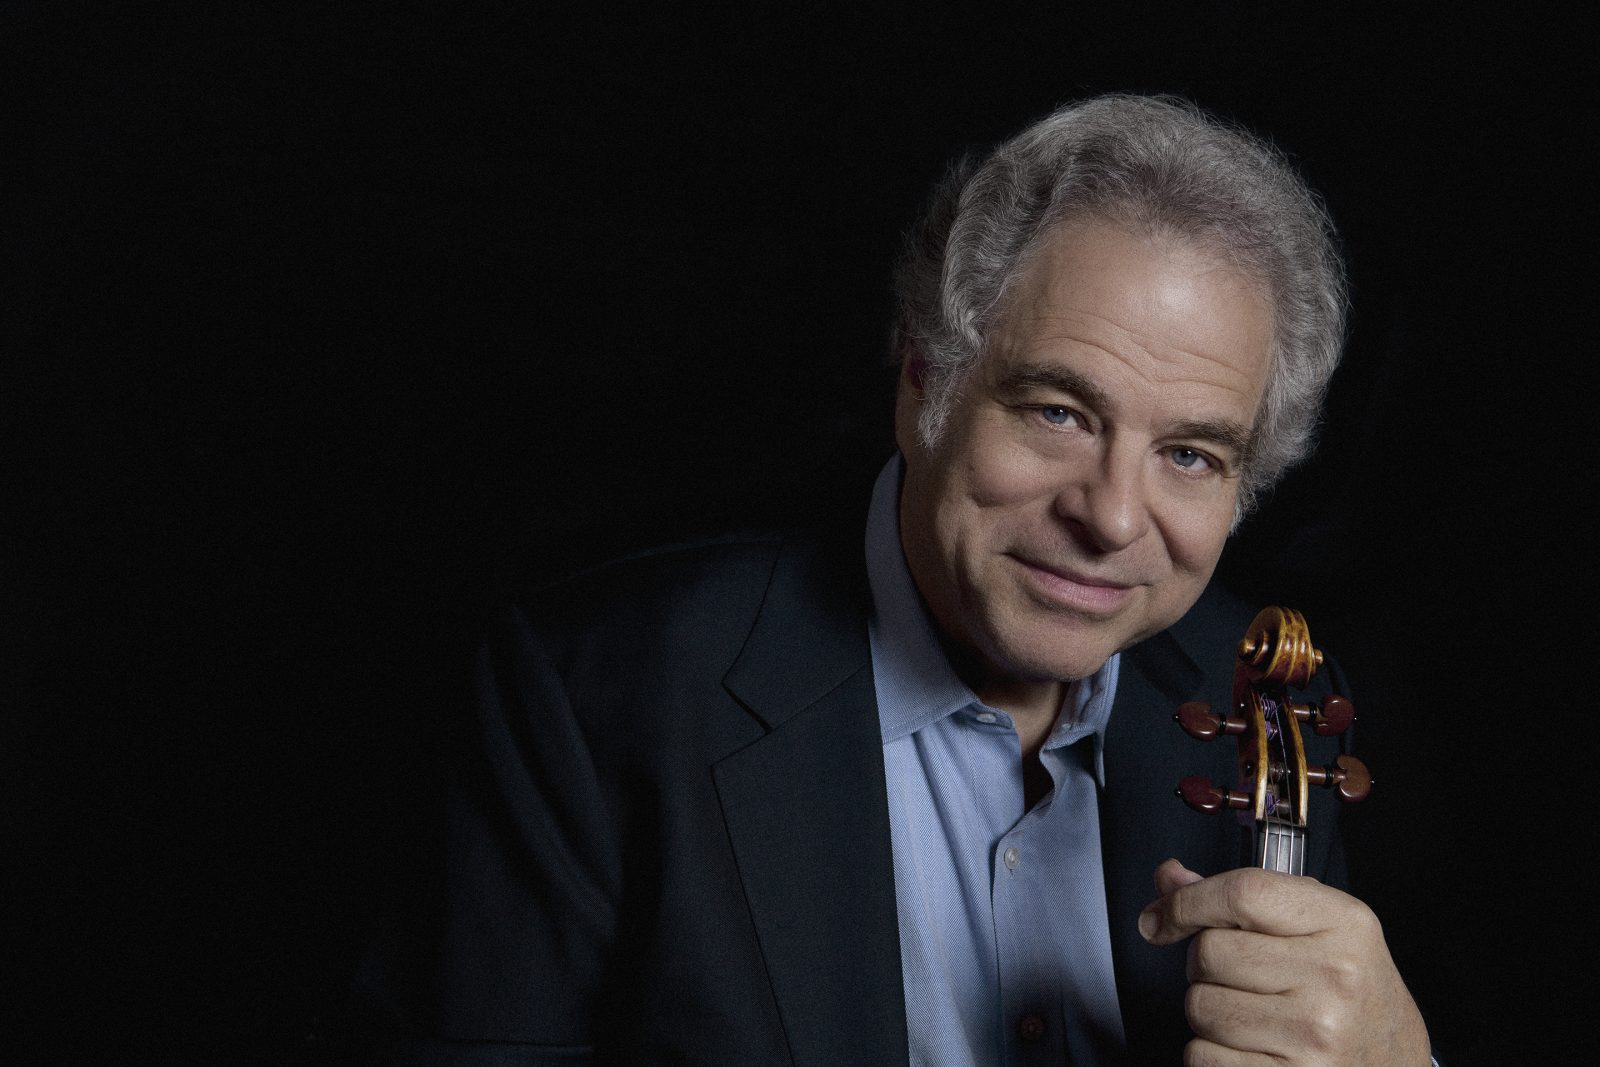 Itzhak Perlman is playing movie themes with the Buffalo Philharmonic Orchestra. (Photo courtesy Lisa Marie Mazzucco)